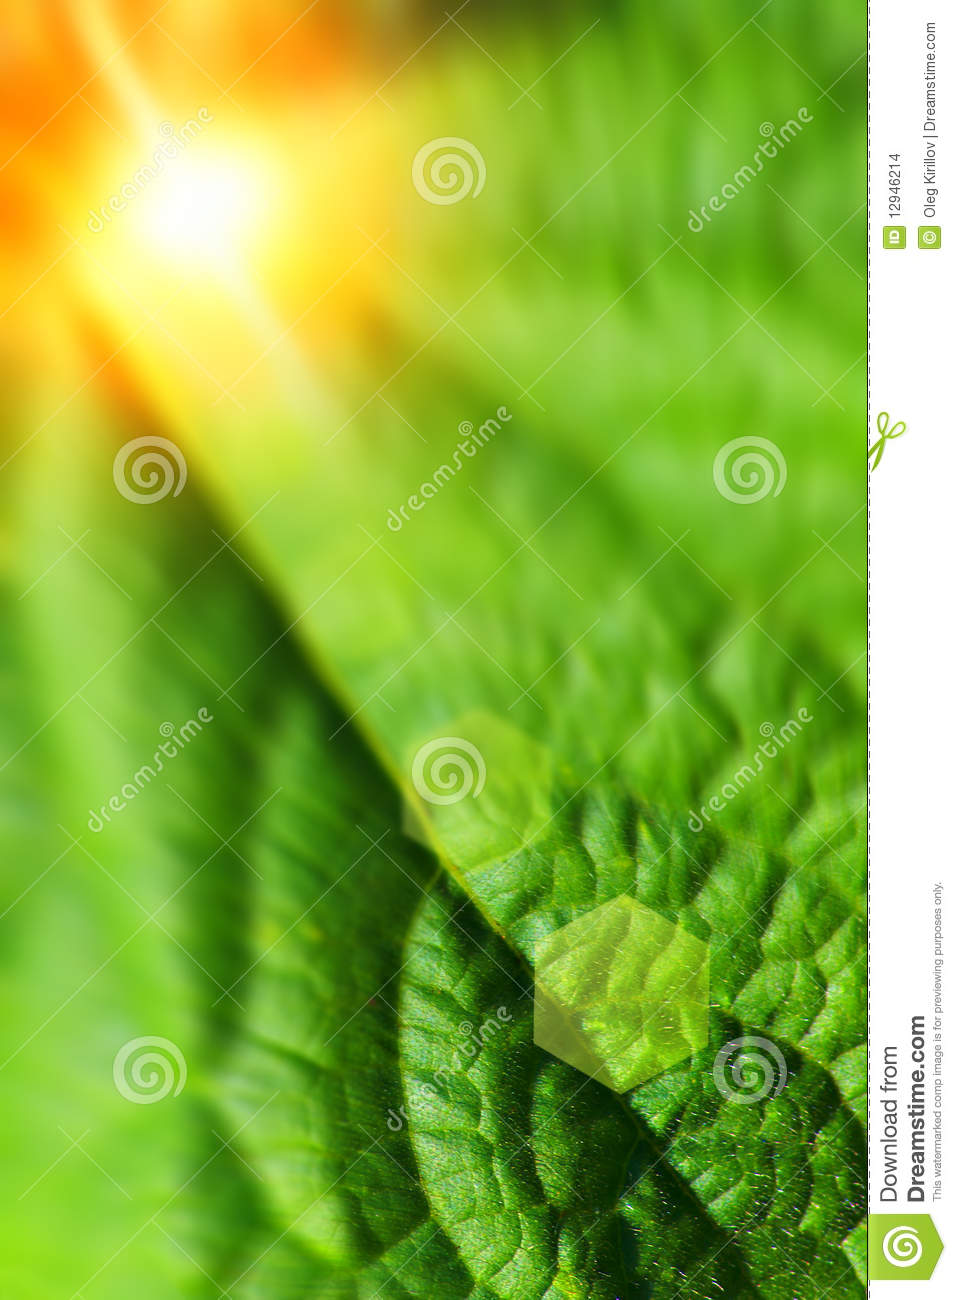 Abstract summer nature theme